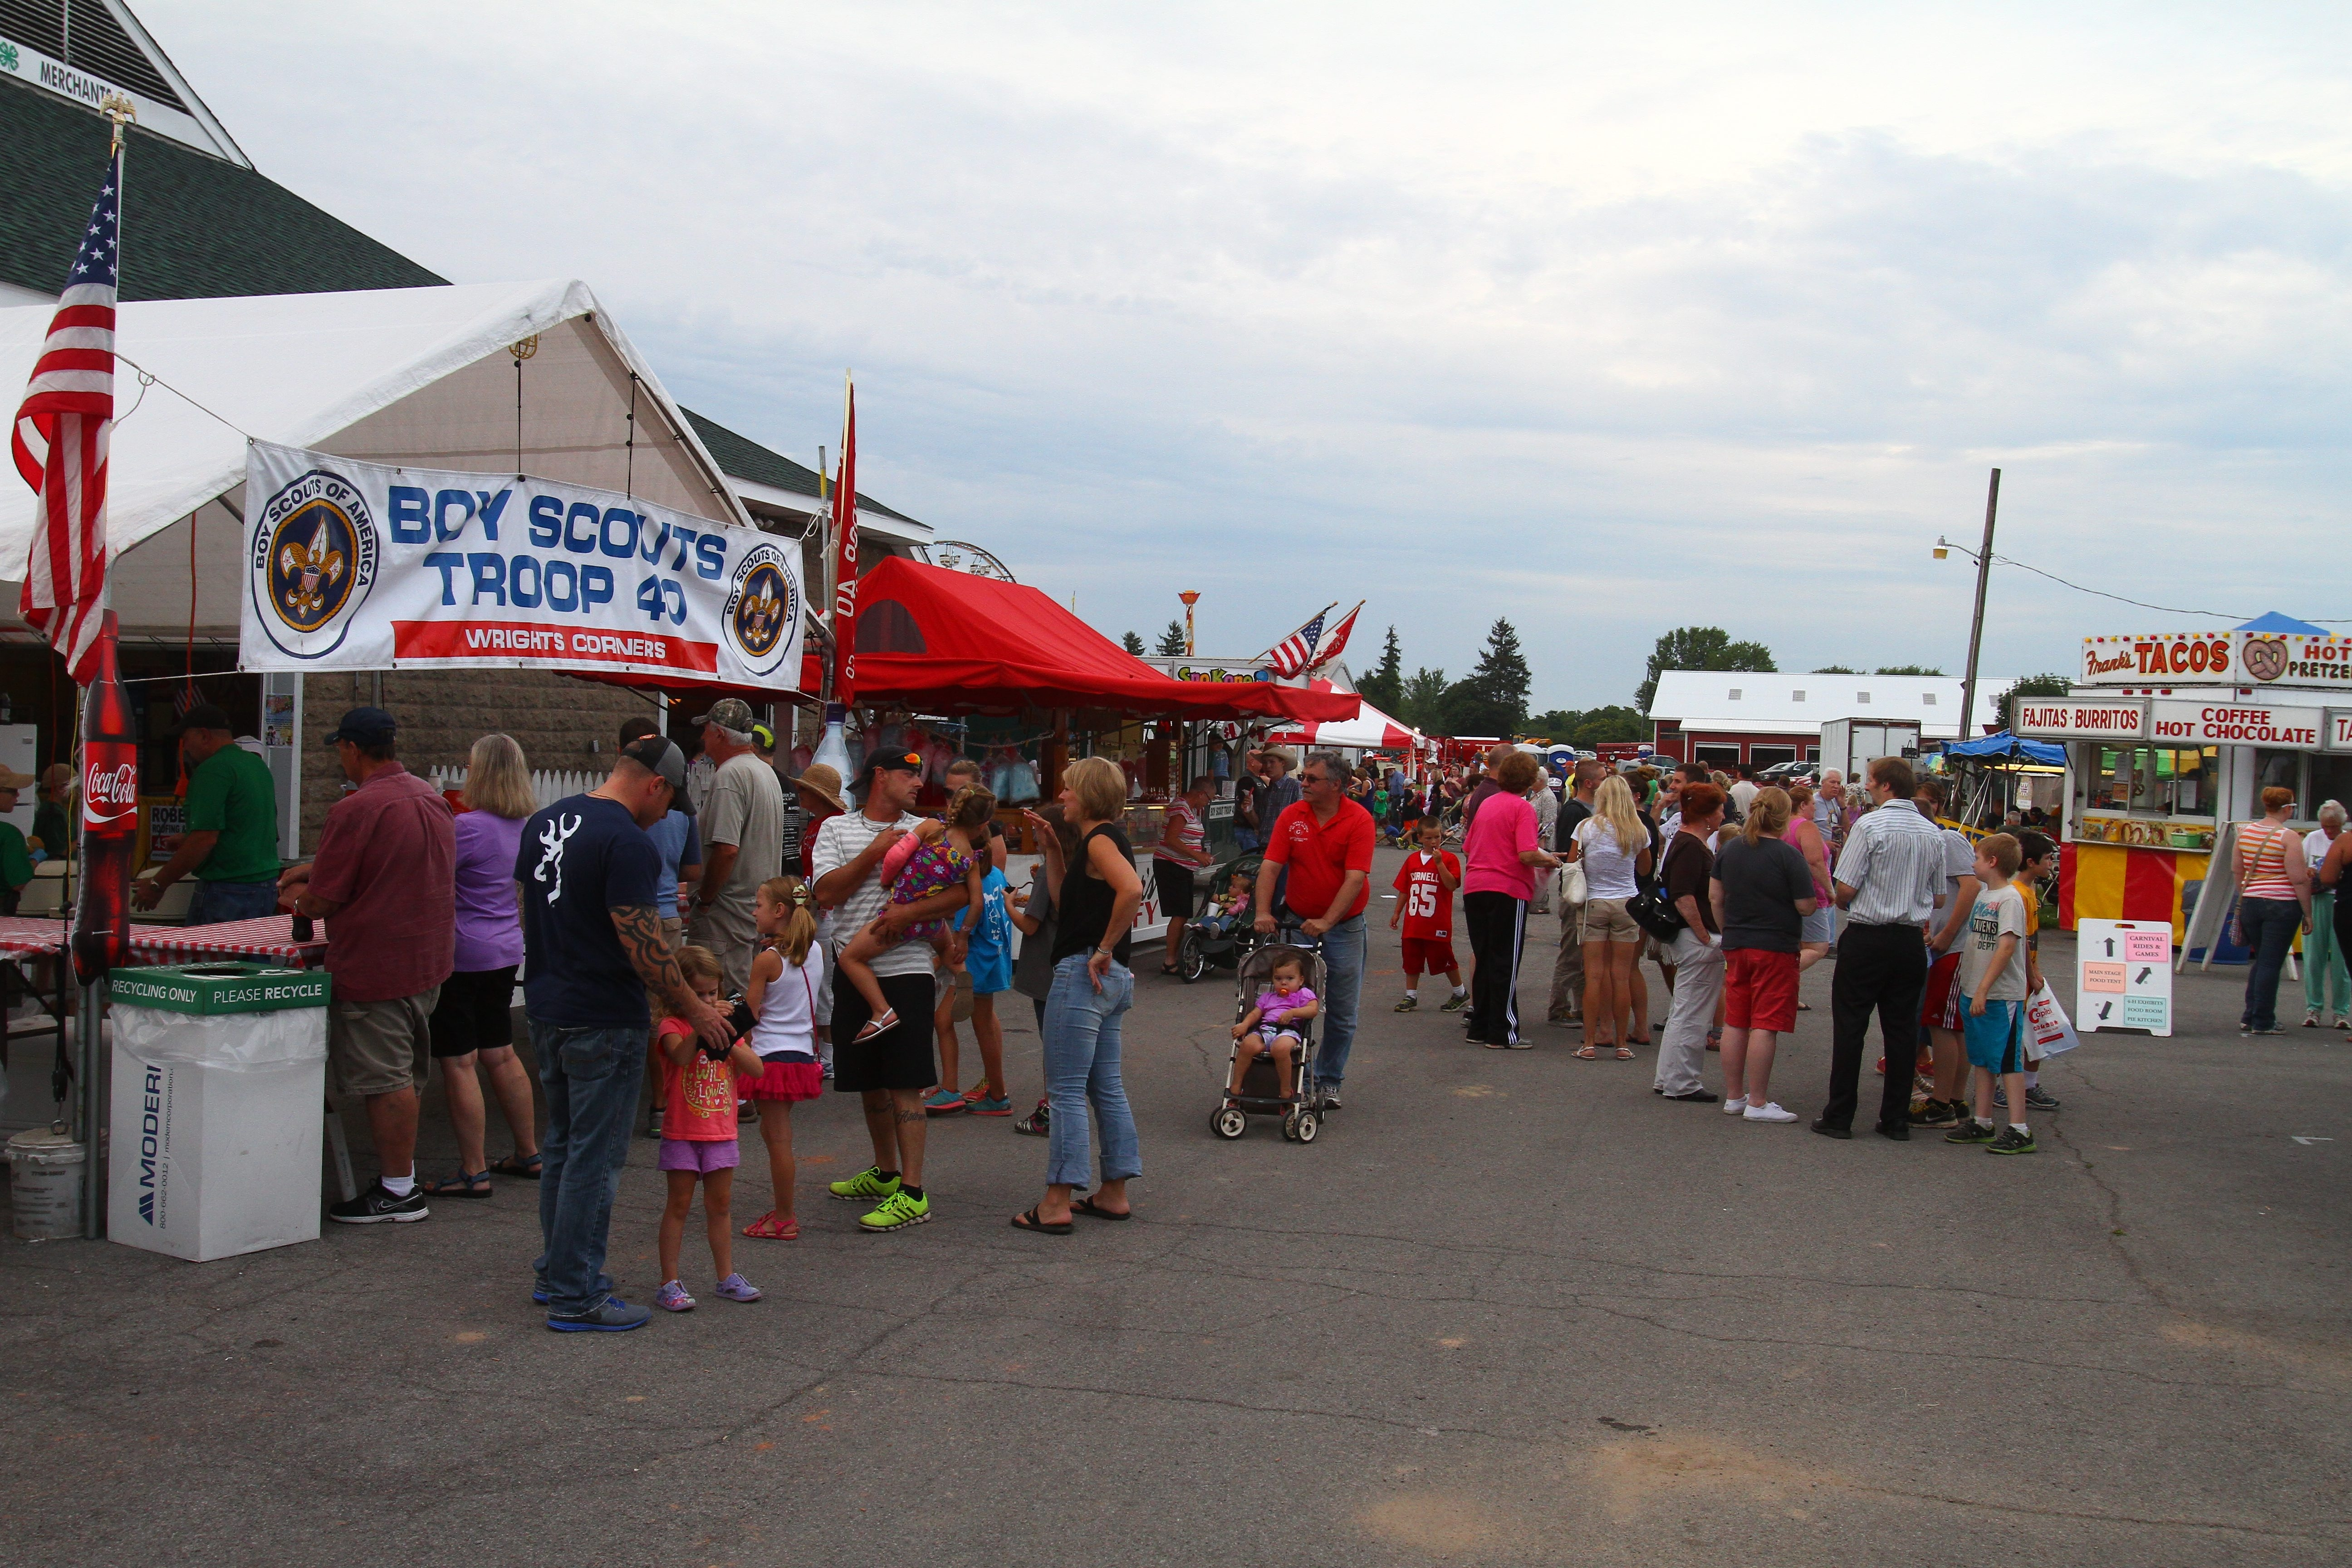 Fairgoers turn out on the first day of the Niagara County Fair at Niagara County Fairgrounds last July 31.